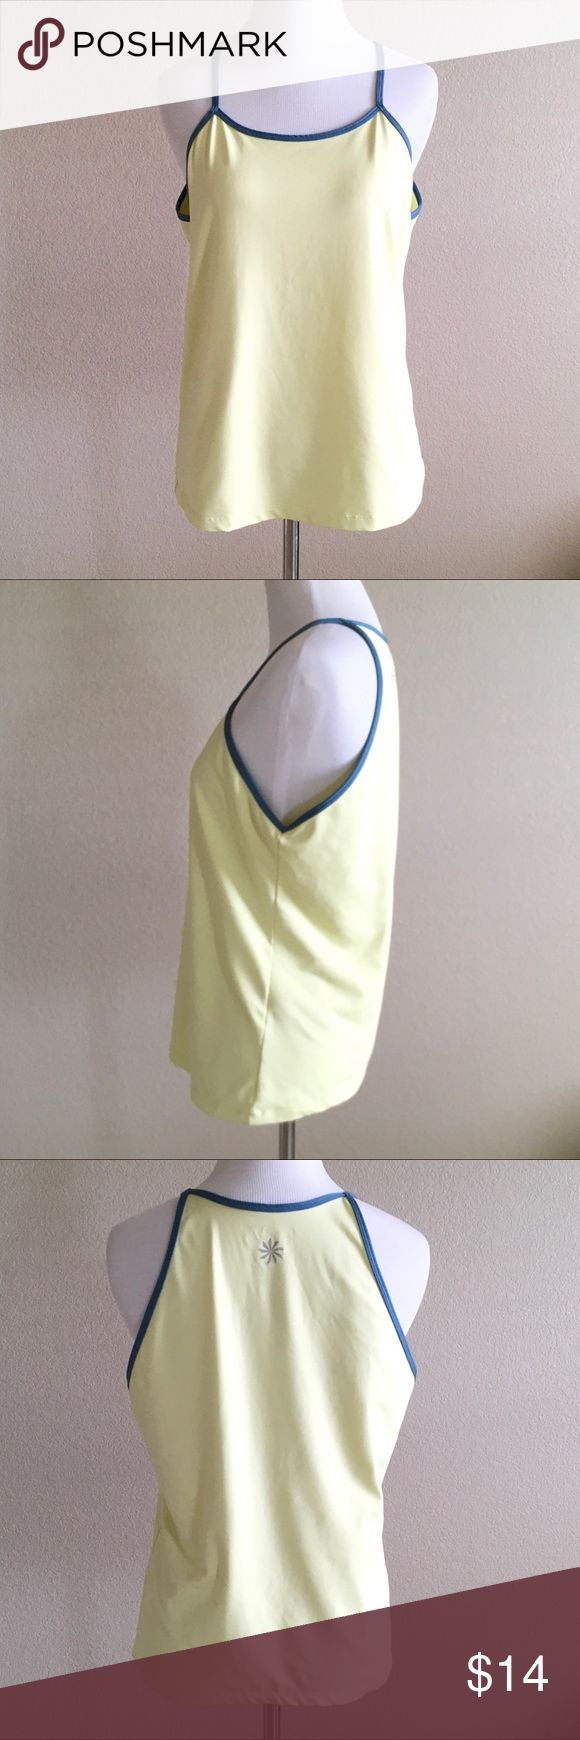 "Athleta EUC womens tank top ❤️Description: A pastel neon yellow top with smoky blue trim with no stains, rips, or flaws ❤️Condition: excellent used ❤️Brand: Athleta  ❤️Size:medium ❤️Color(s): yellow, blue ❤️Materials: 88% polyester 12% spandex ❤️Approximate Measurements, laying flat:       Waist  18""      Bust   17"" across the chest      Total length  24"" shoulder to bottom hem  ❤️Notes: 💕Bundle & save!💕 Athleta Tops Tank Tops"